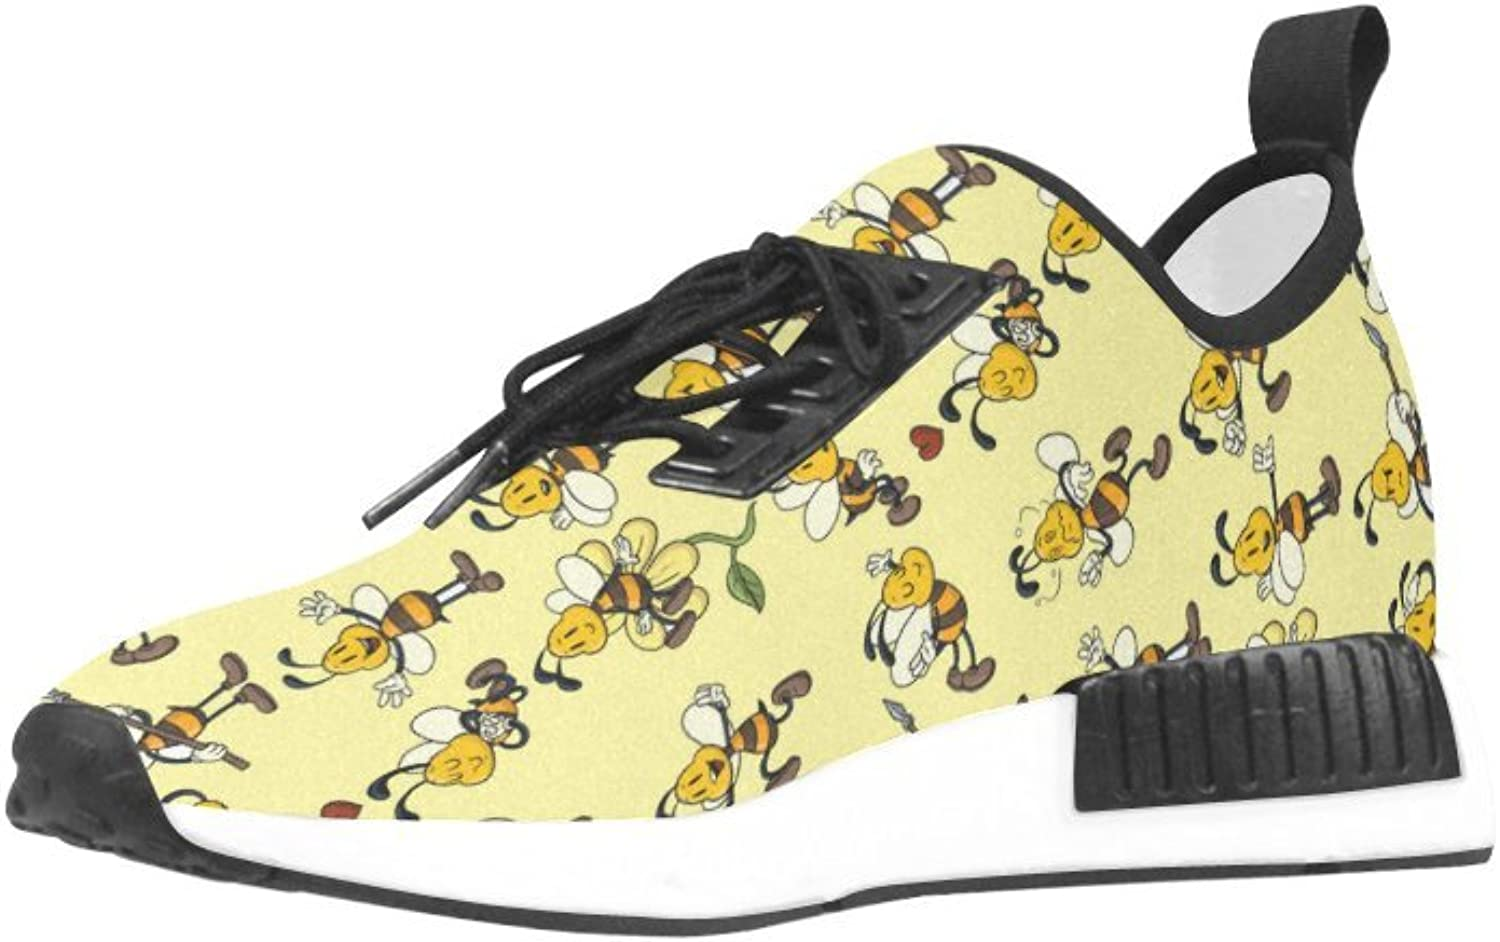 CERLYRUAN Honeybee Beehive Pattern Mesh Cloth Breathable Woven Leather Insole Running shoes for Women